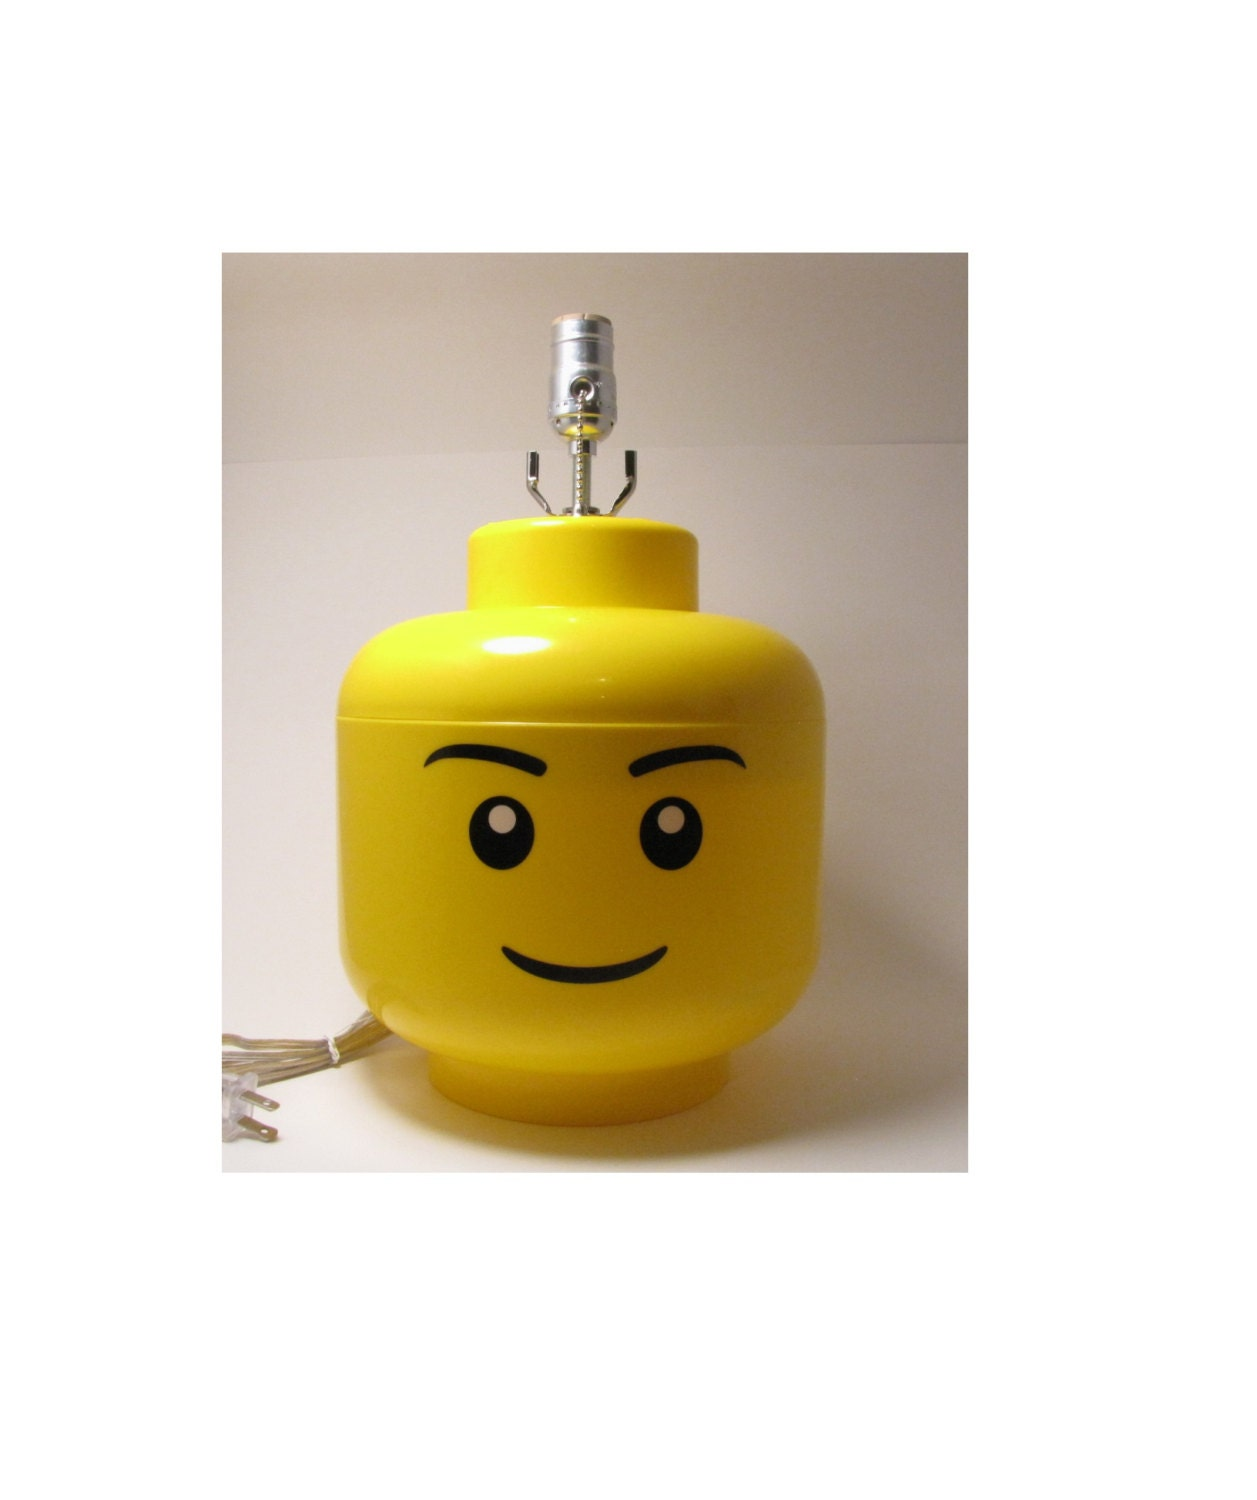 Lego Decorations For Bedroom Large Male Lego Minifigure Head Lamp Perfect Lego Themed